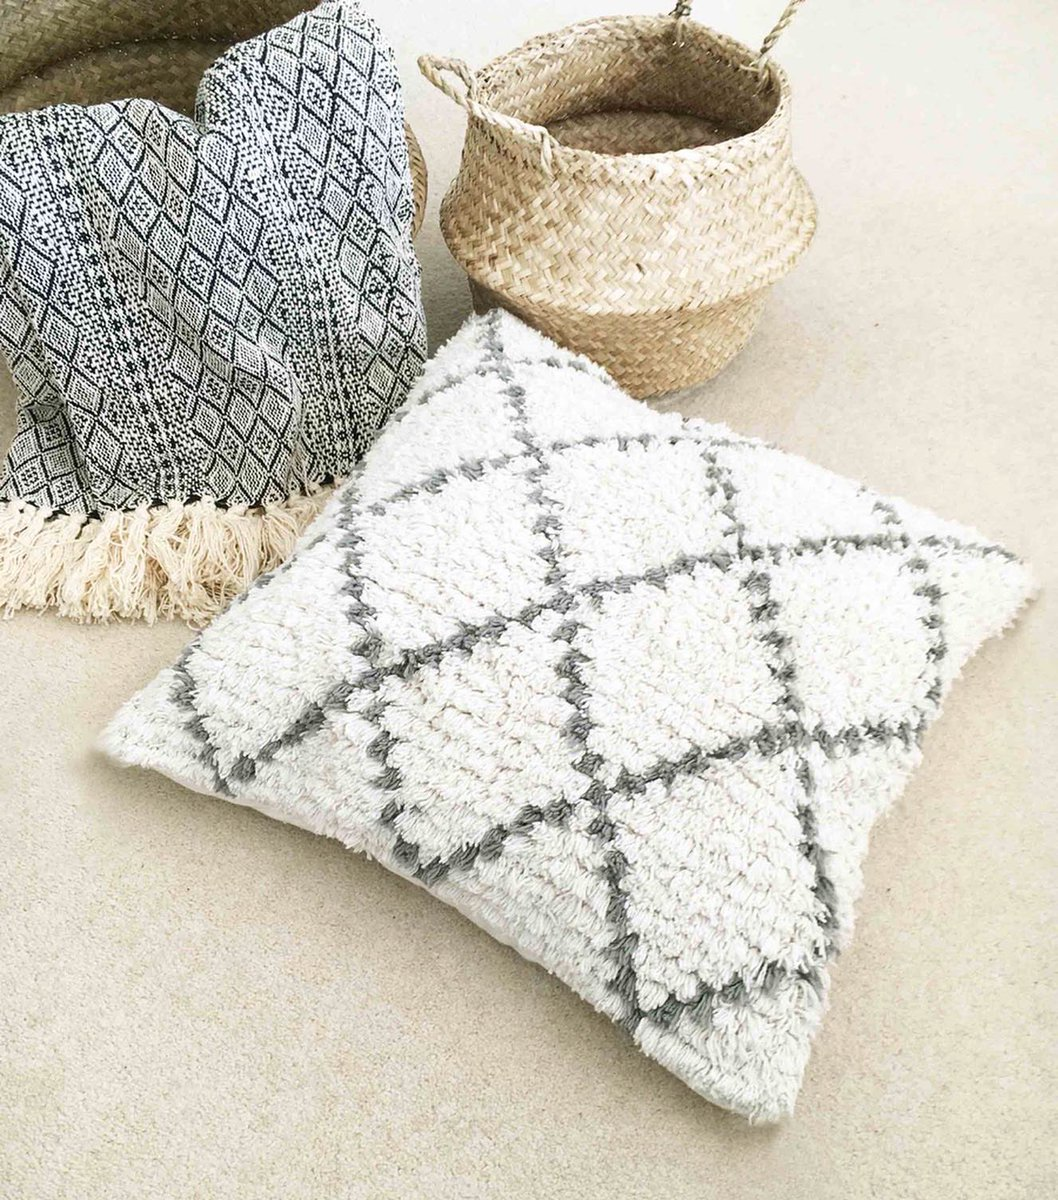 ➕ BACK IN STOCK ➕ Our best-selling and #sustainable natural shaggy Moroccan Berber #cushion and #rug, and leather woven rug [which are also all @GoodWeave certified] are now BACK IN STOCK 🙌🏻 though no doubt, they won't stay around for long!  #homedecor